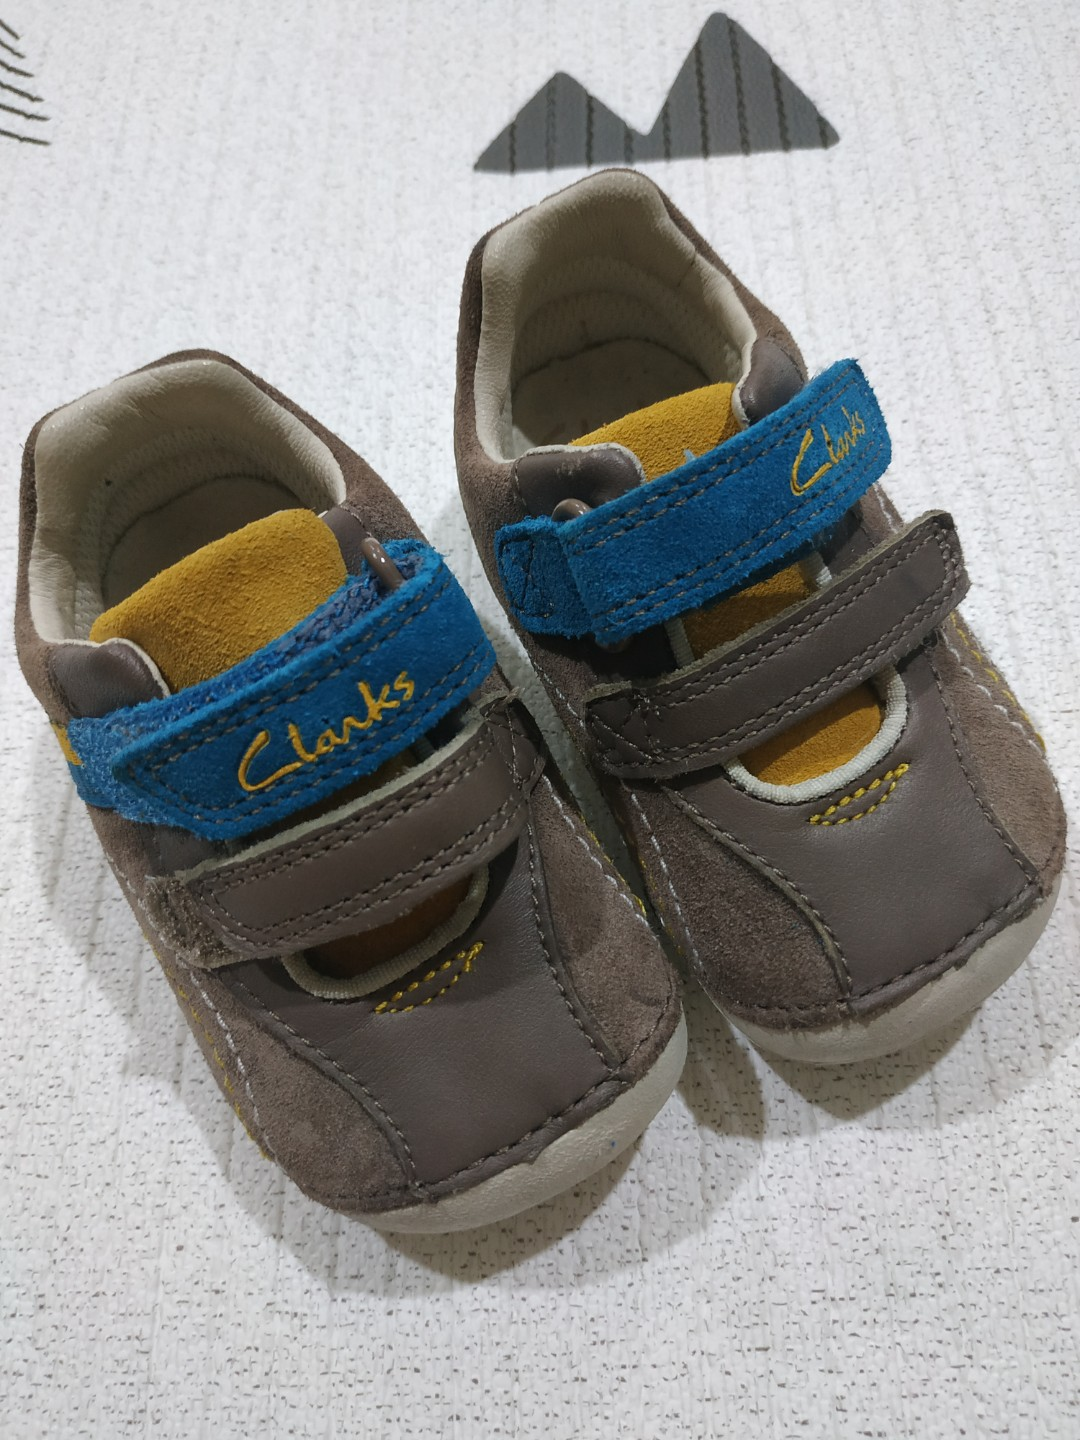 7d358c698f8 BN Baby Clarks Shoes Uk Size 3 1 2